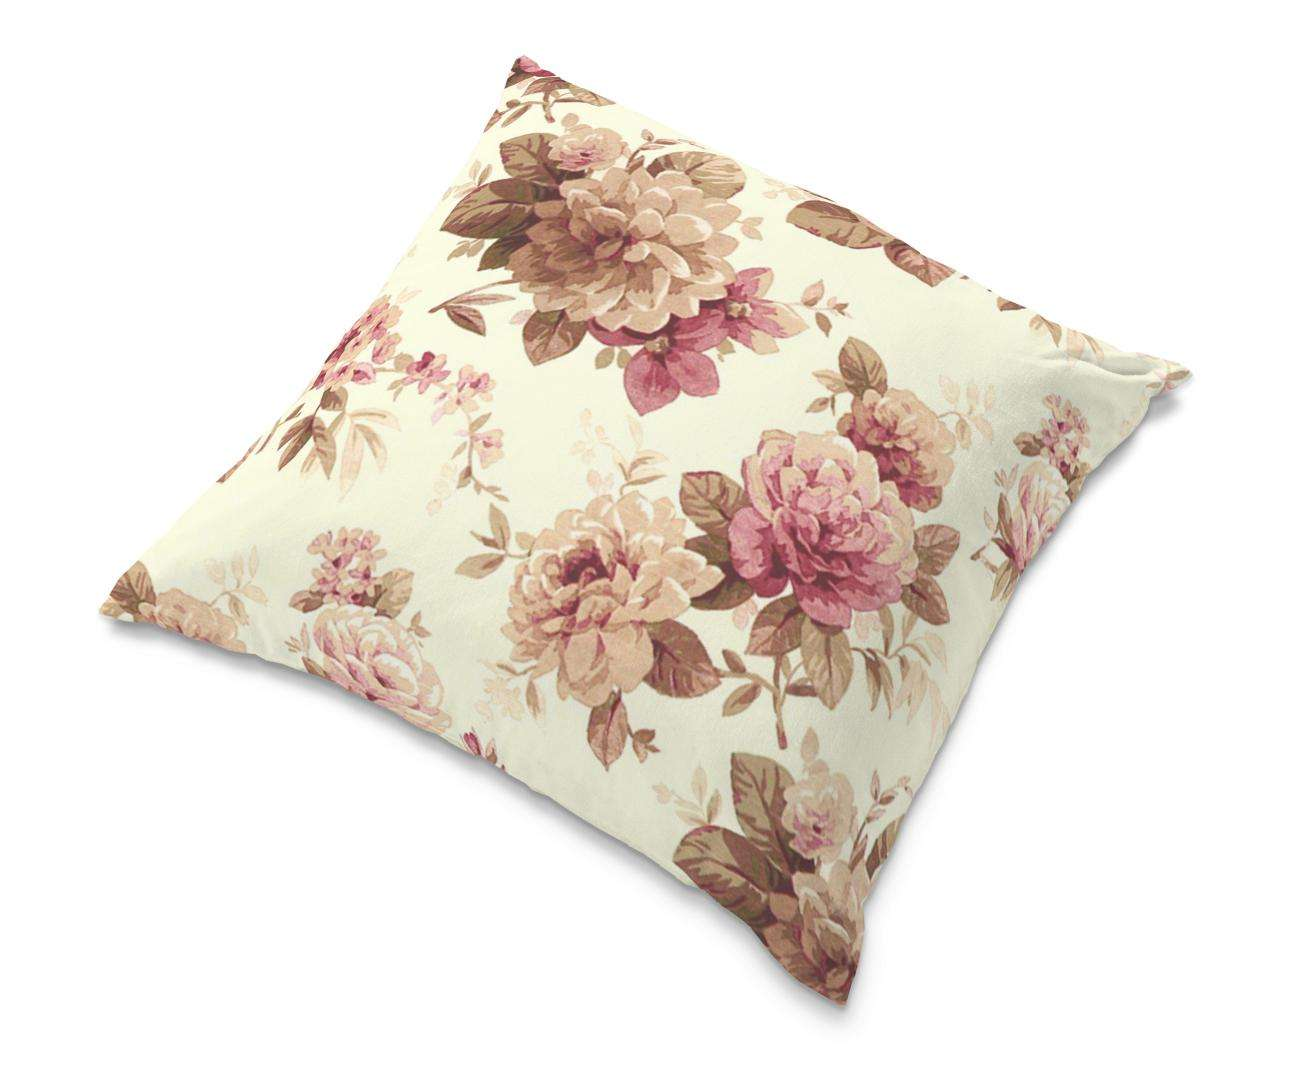 Tomelilla cushion cover in collection Mirella, fabric: 141-06